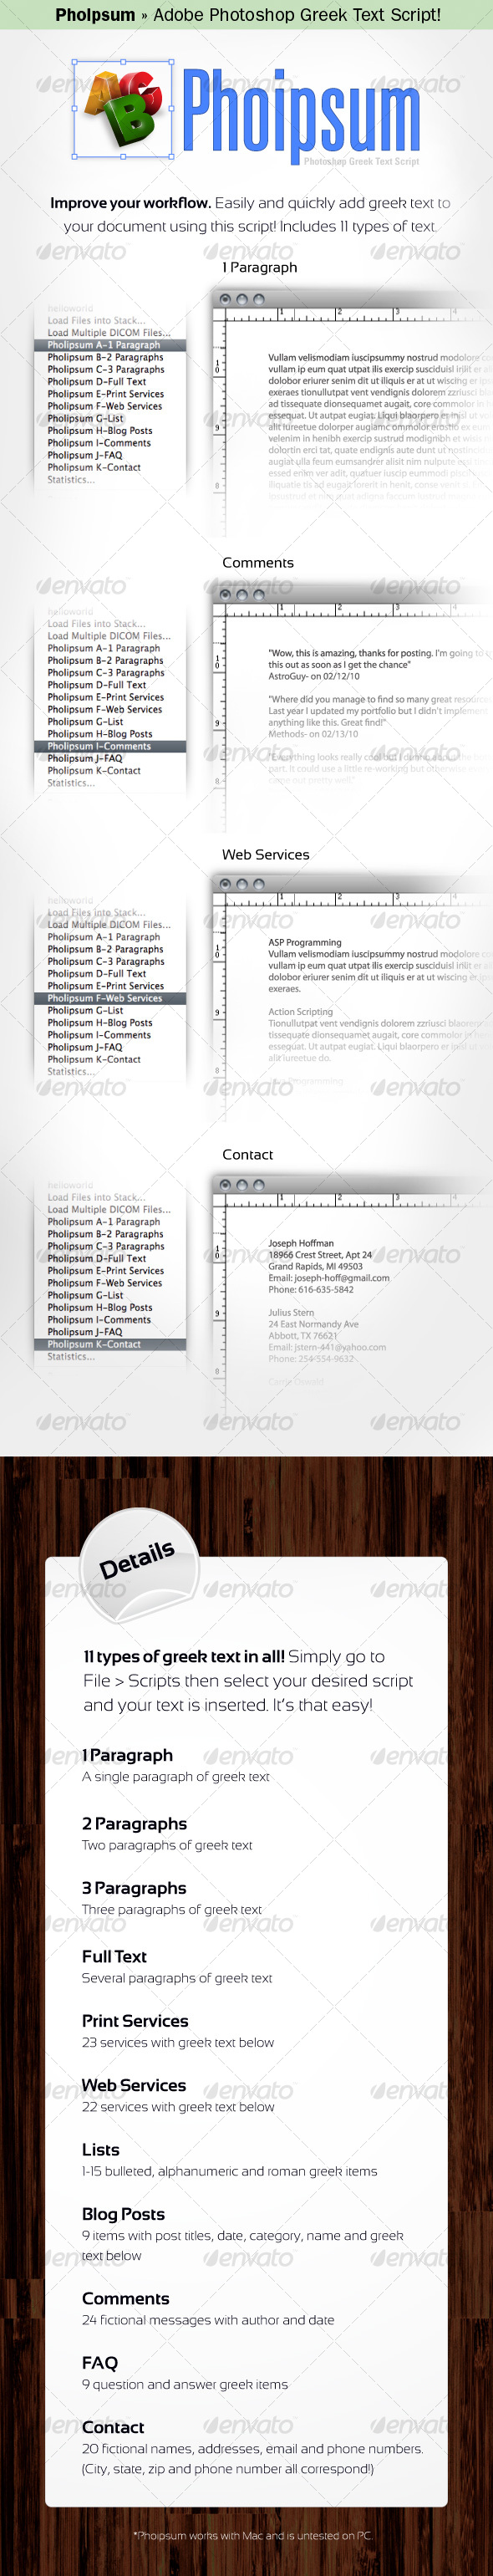 GraphicRiver Phoipsum Adobe Photoshop Greek Text Script 77673